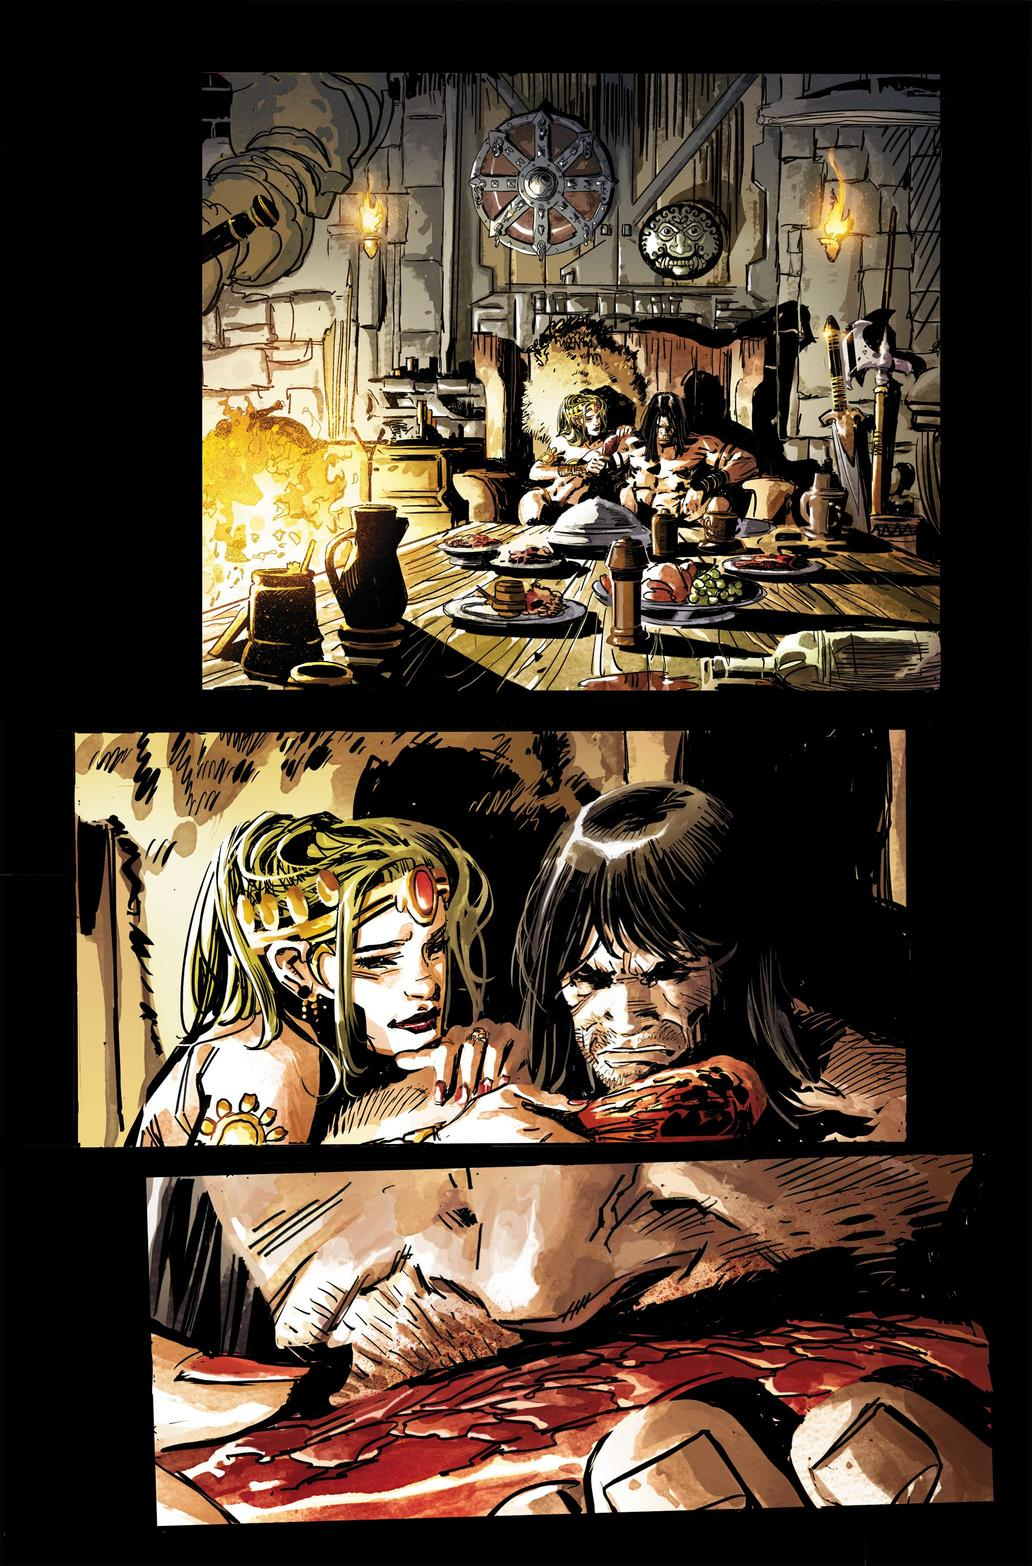 Preview page from Savage Sword of Conan